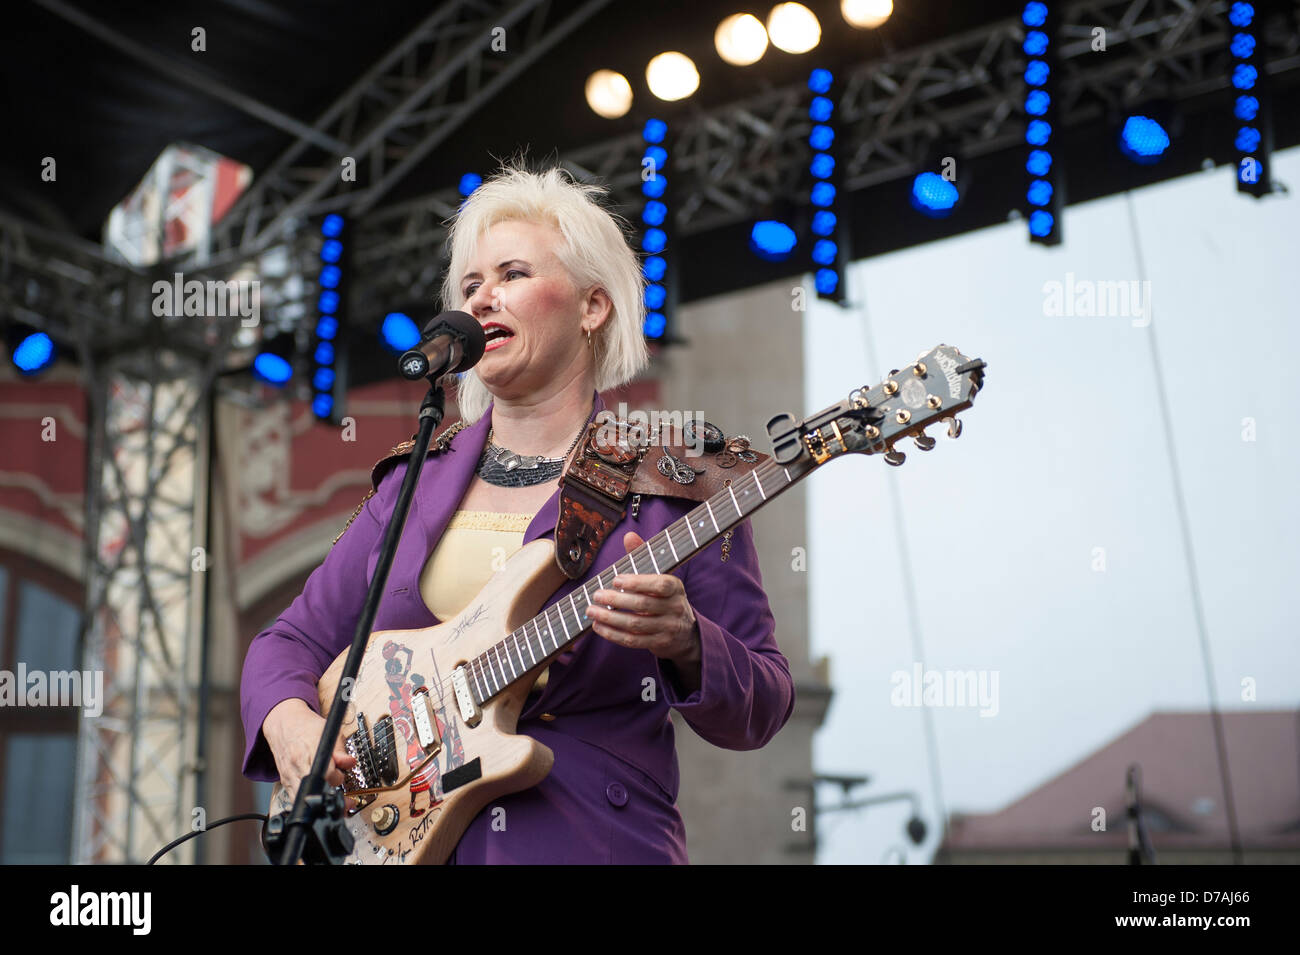 Guitarist Jennifer Batten performing at the Thanks Jimi Festival in Wroclaw, Poland. Stock Photo